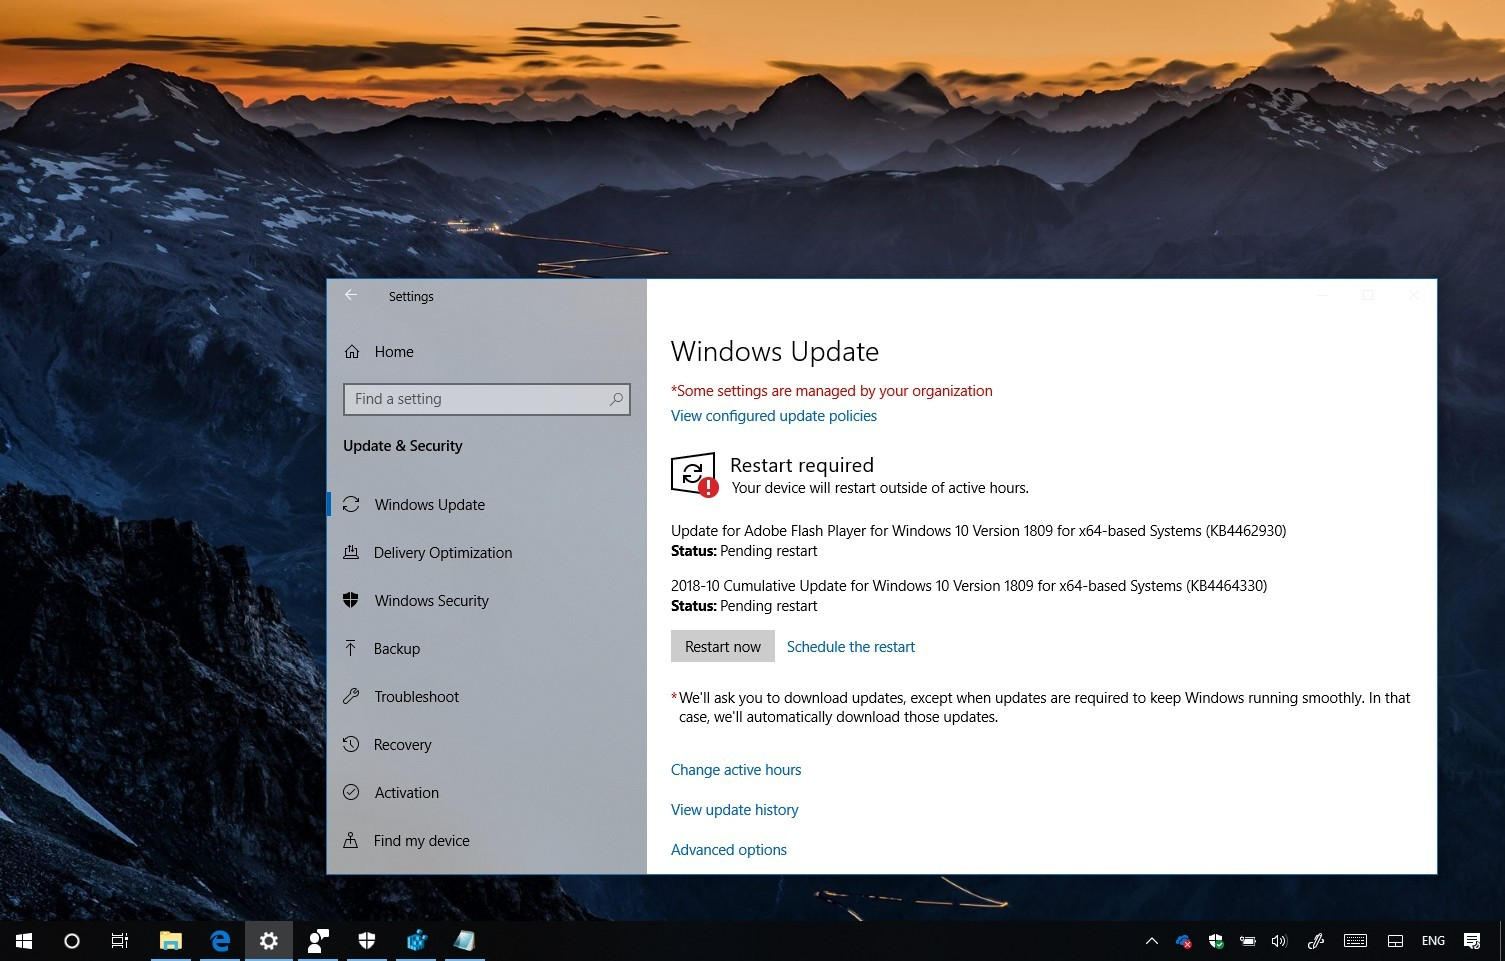 KB4464330 update for Windows 10 version 1809